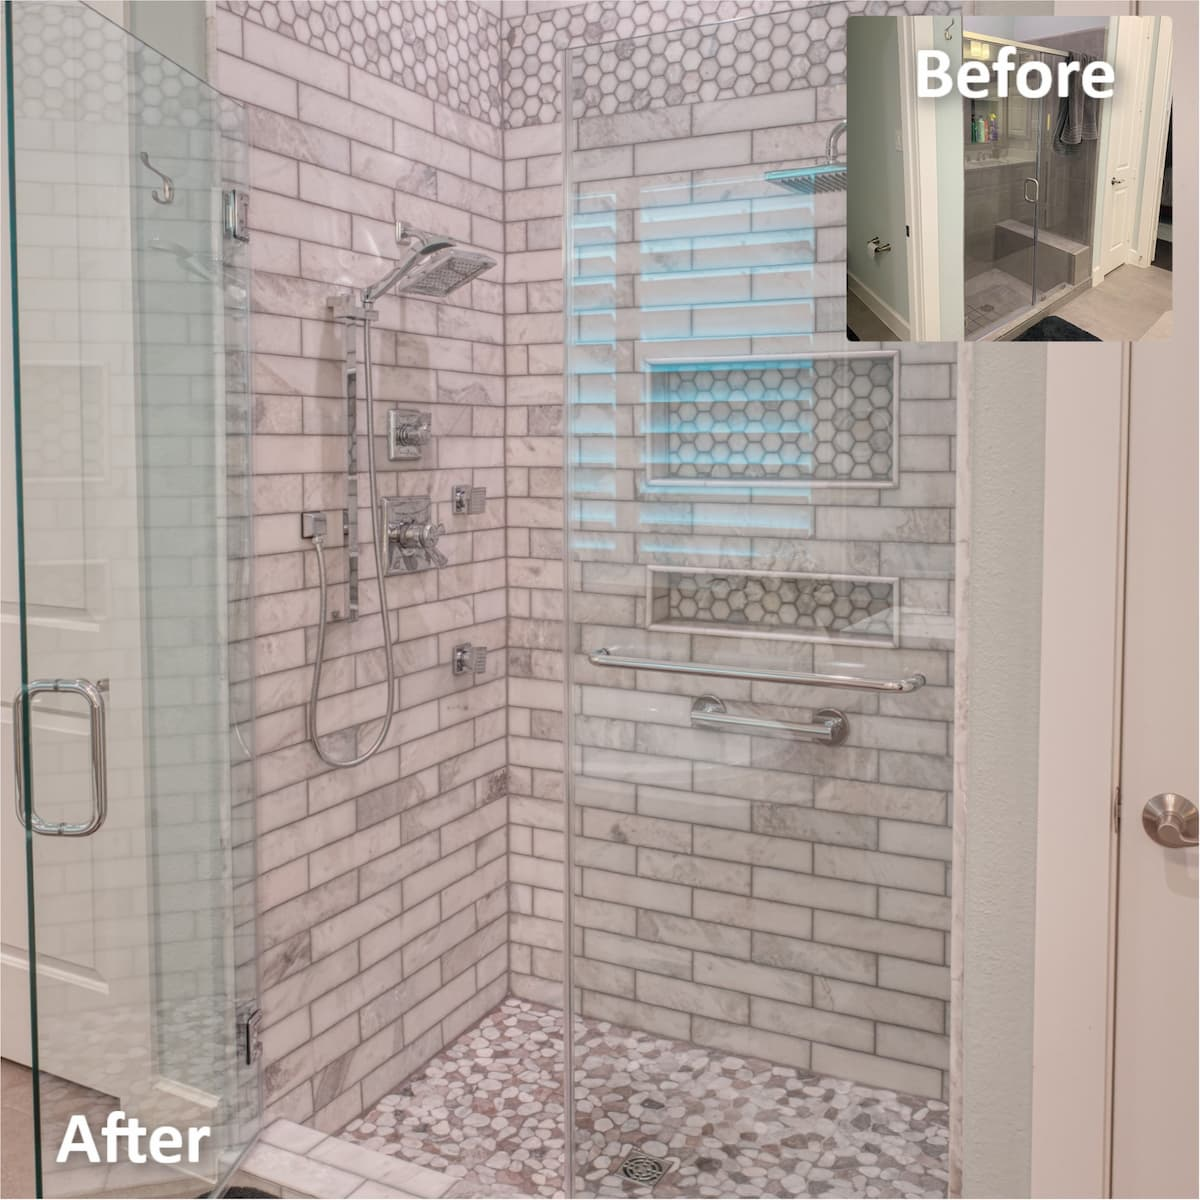 Natural stone subway tile and pebble rock shower floor using schluter system